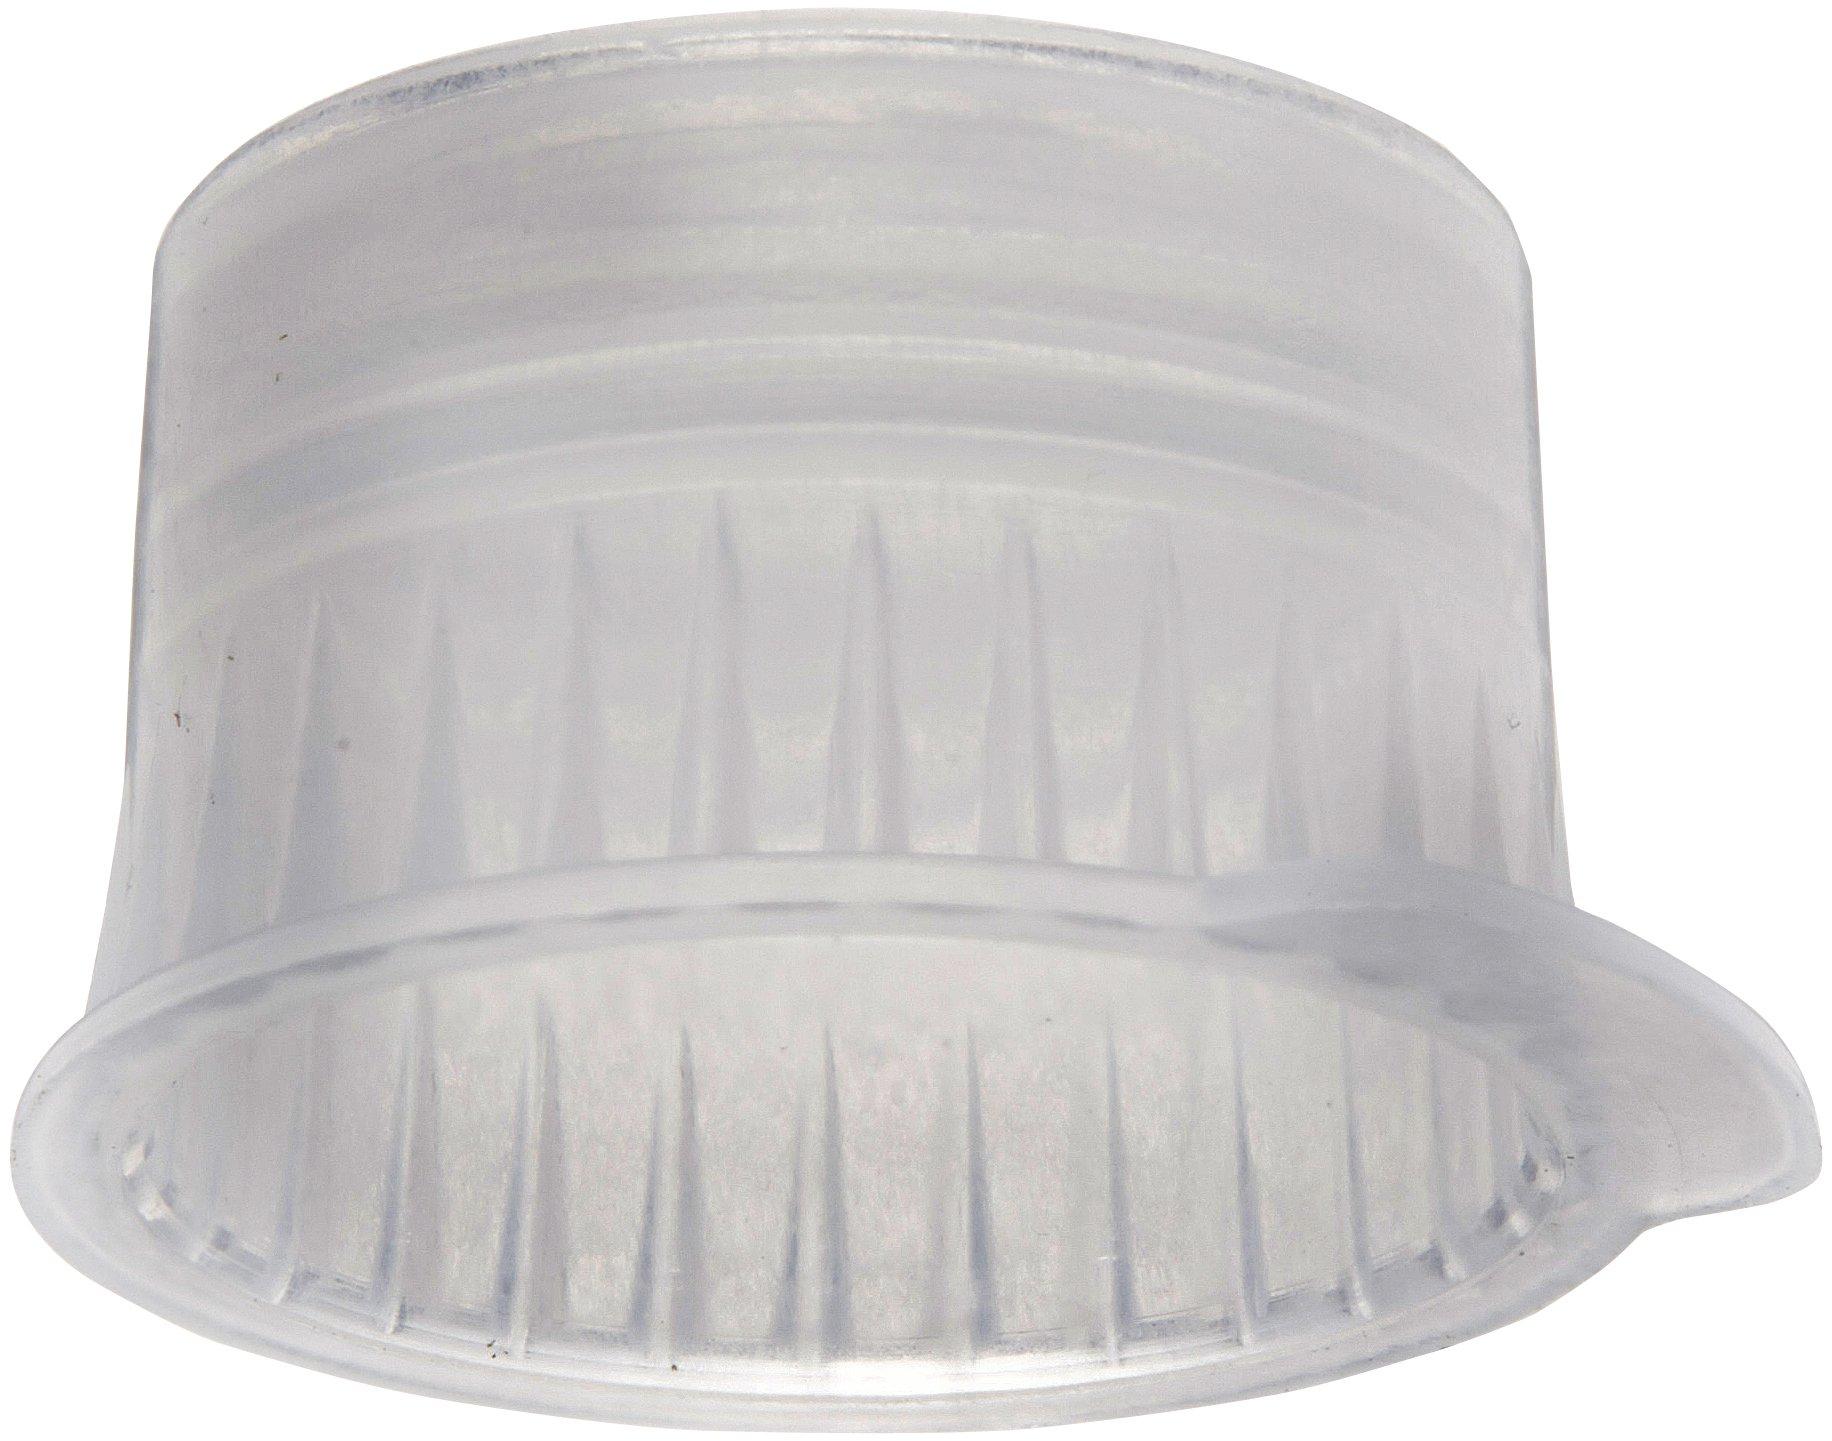 PlatinumCode 88030W 13mm Cap for 13mm Vacuum and 12mm Glass or Plastic Tubes, White (Bag of 1000)